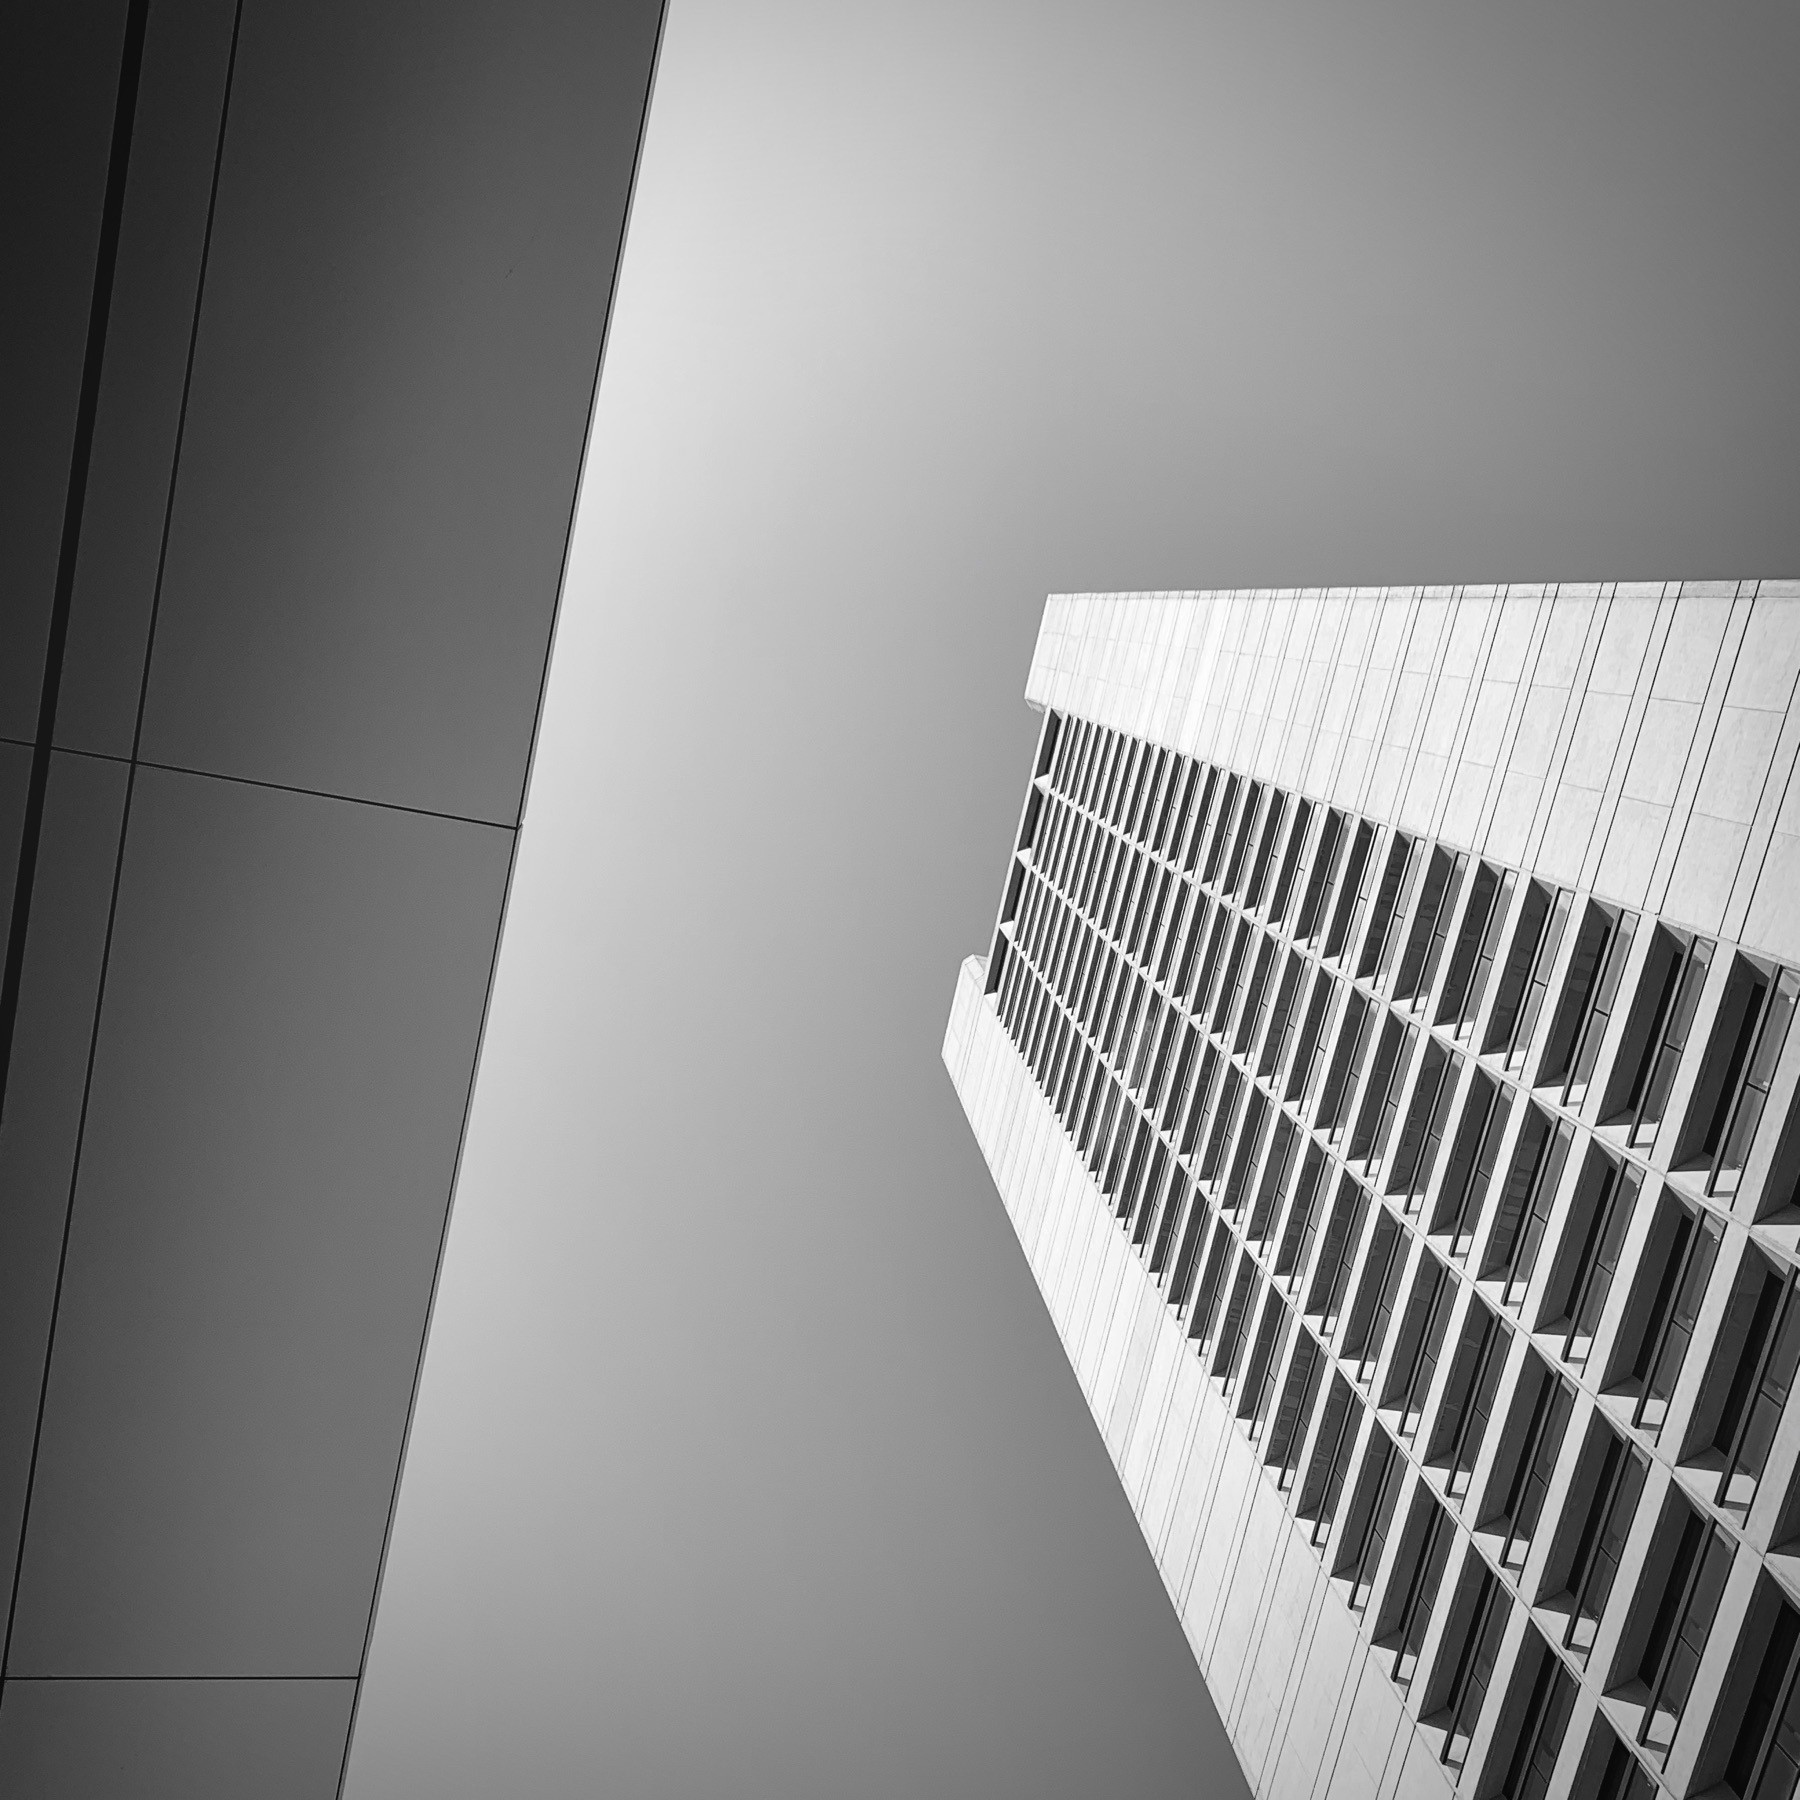 Looking upward at a large skyscraper, black and white.